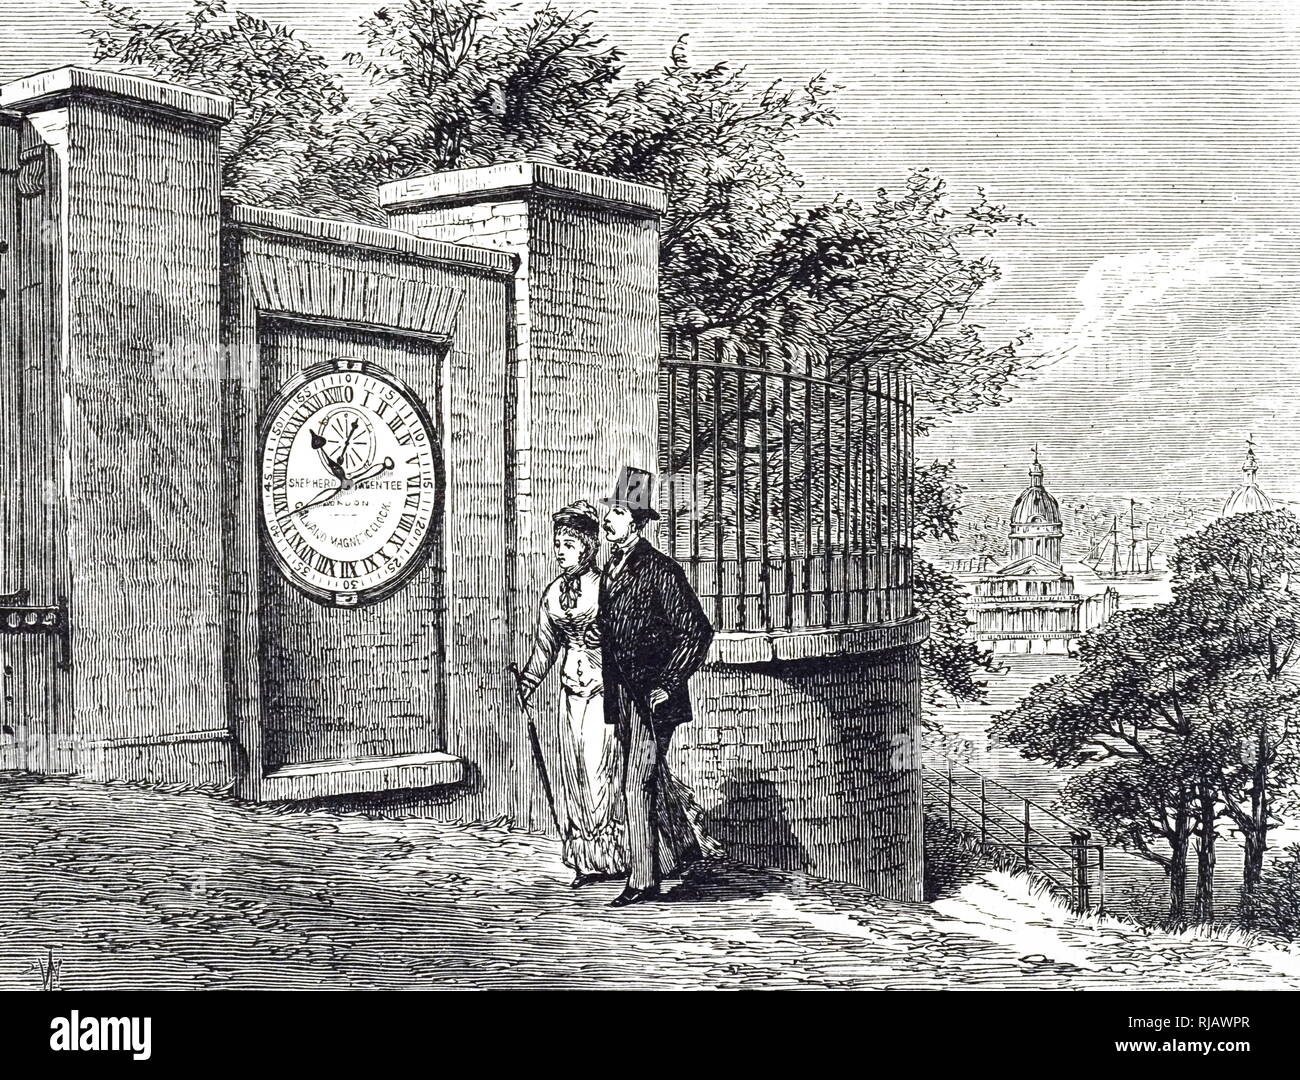 An engraving depicting a public electric clock installed by Airy at the gate of the Royal Greenwich Observatory. Dated 19th century - Stock Image